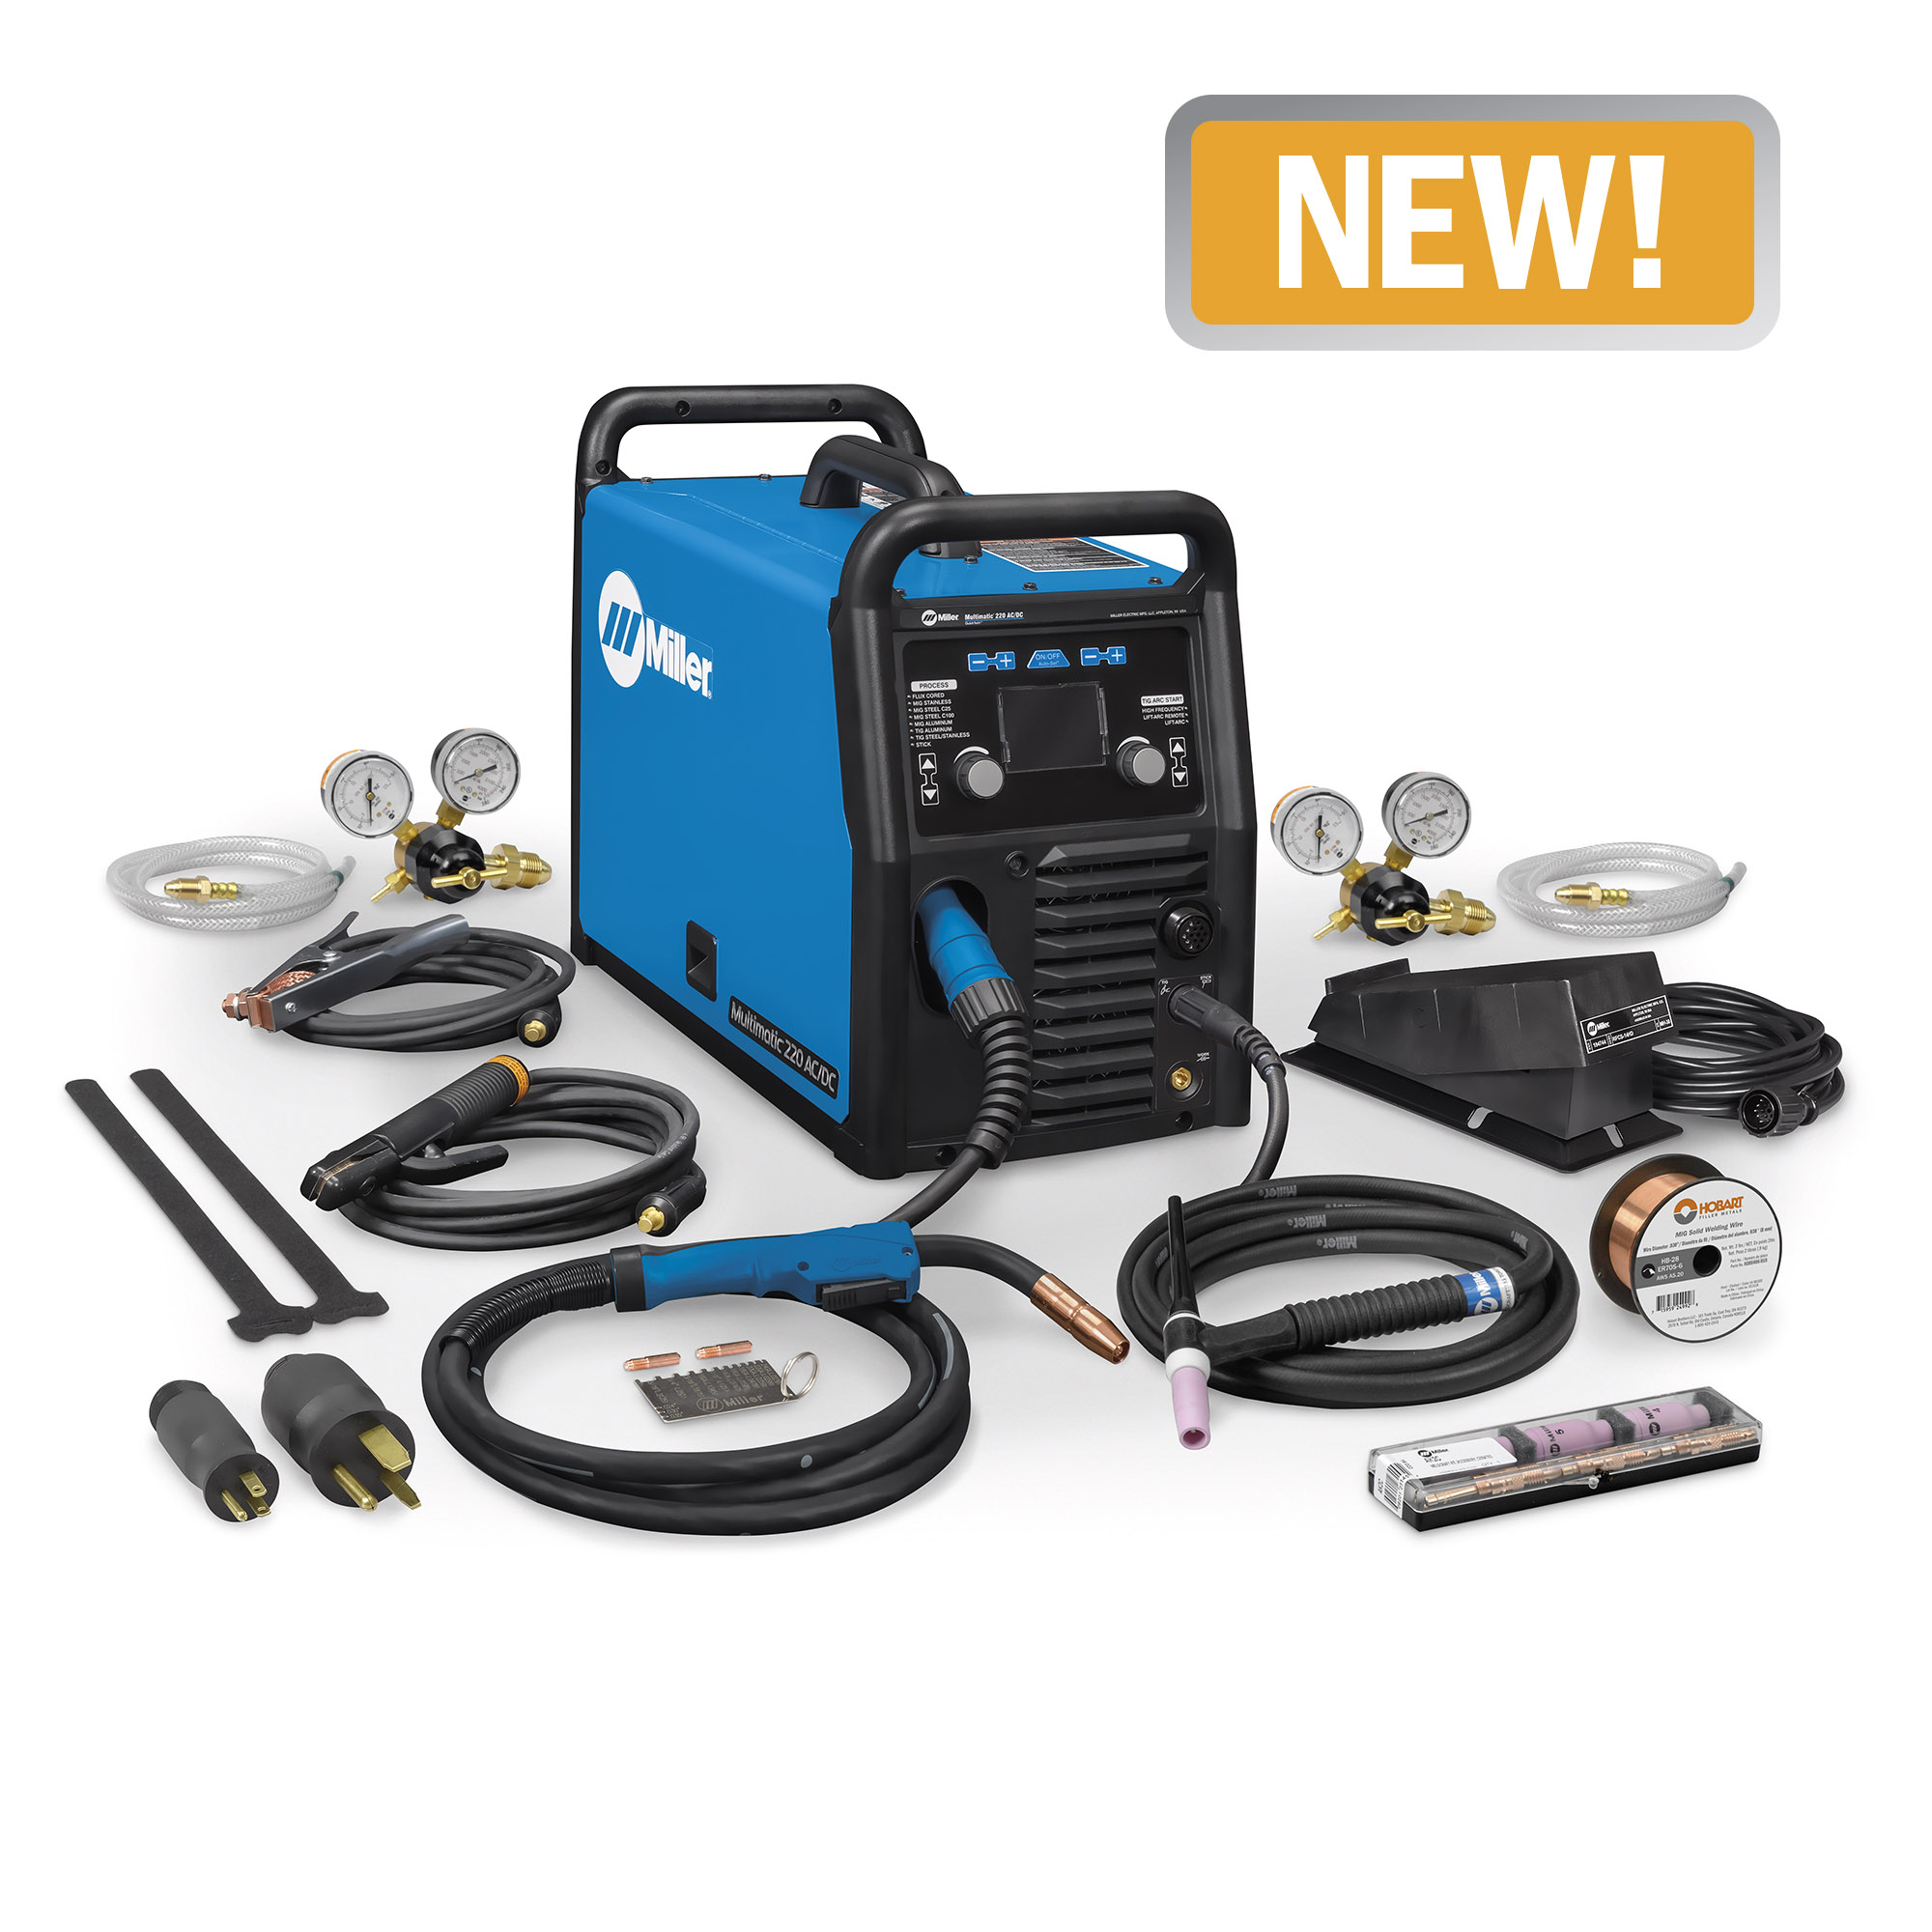 small resolution of miller multimatic 220 ac dc multiprocess welder with accessories